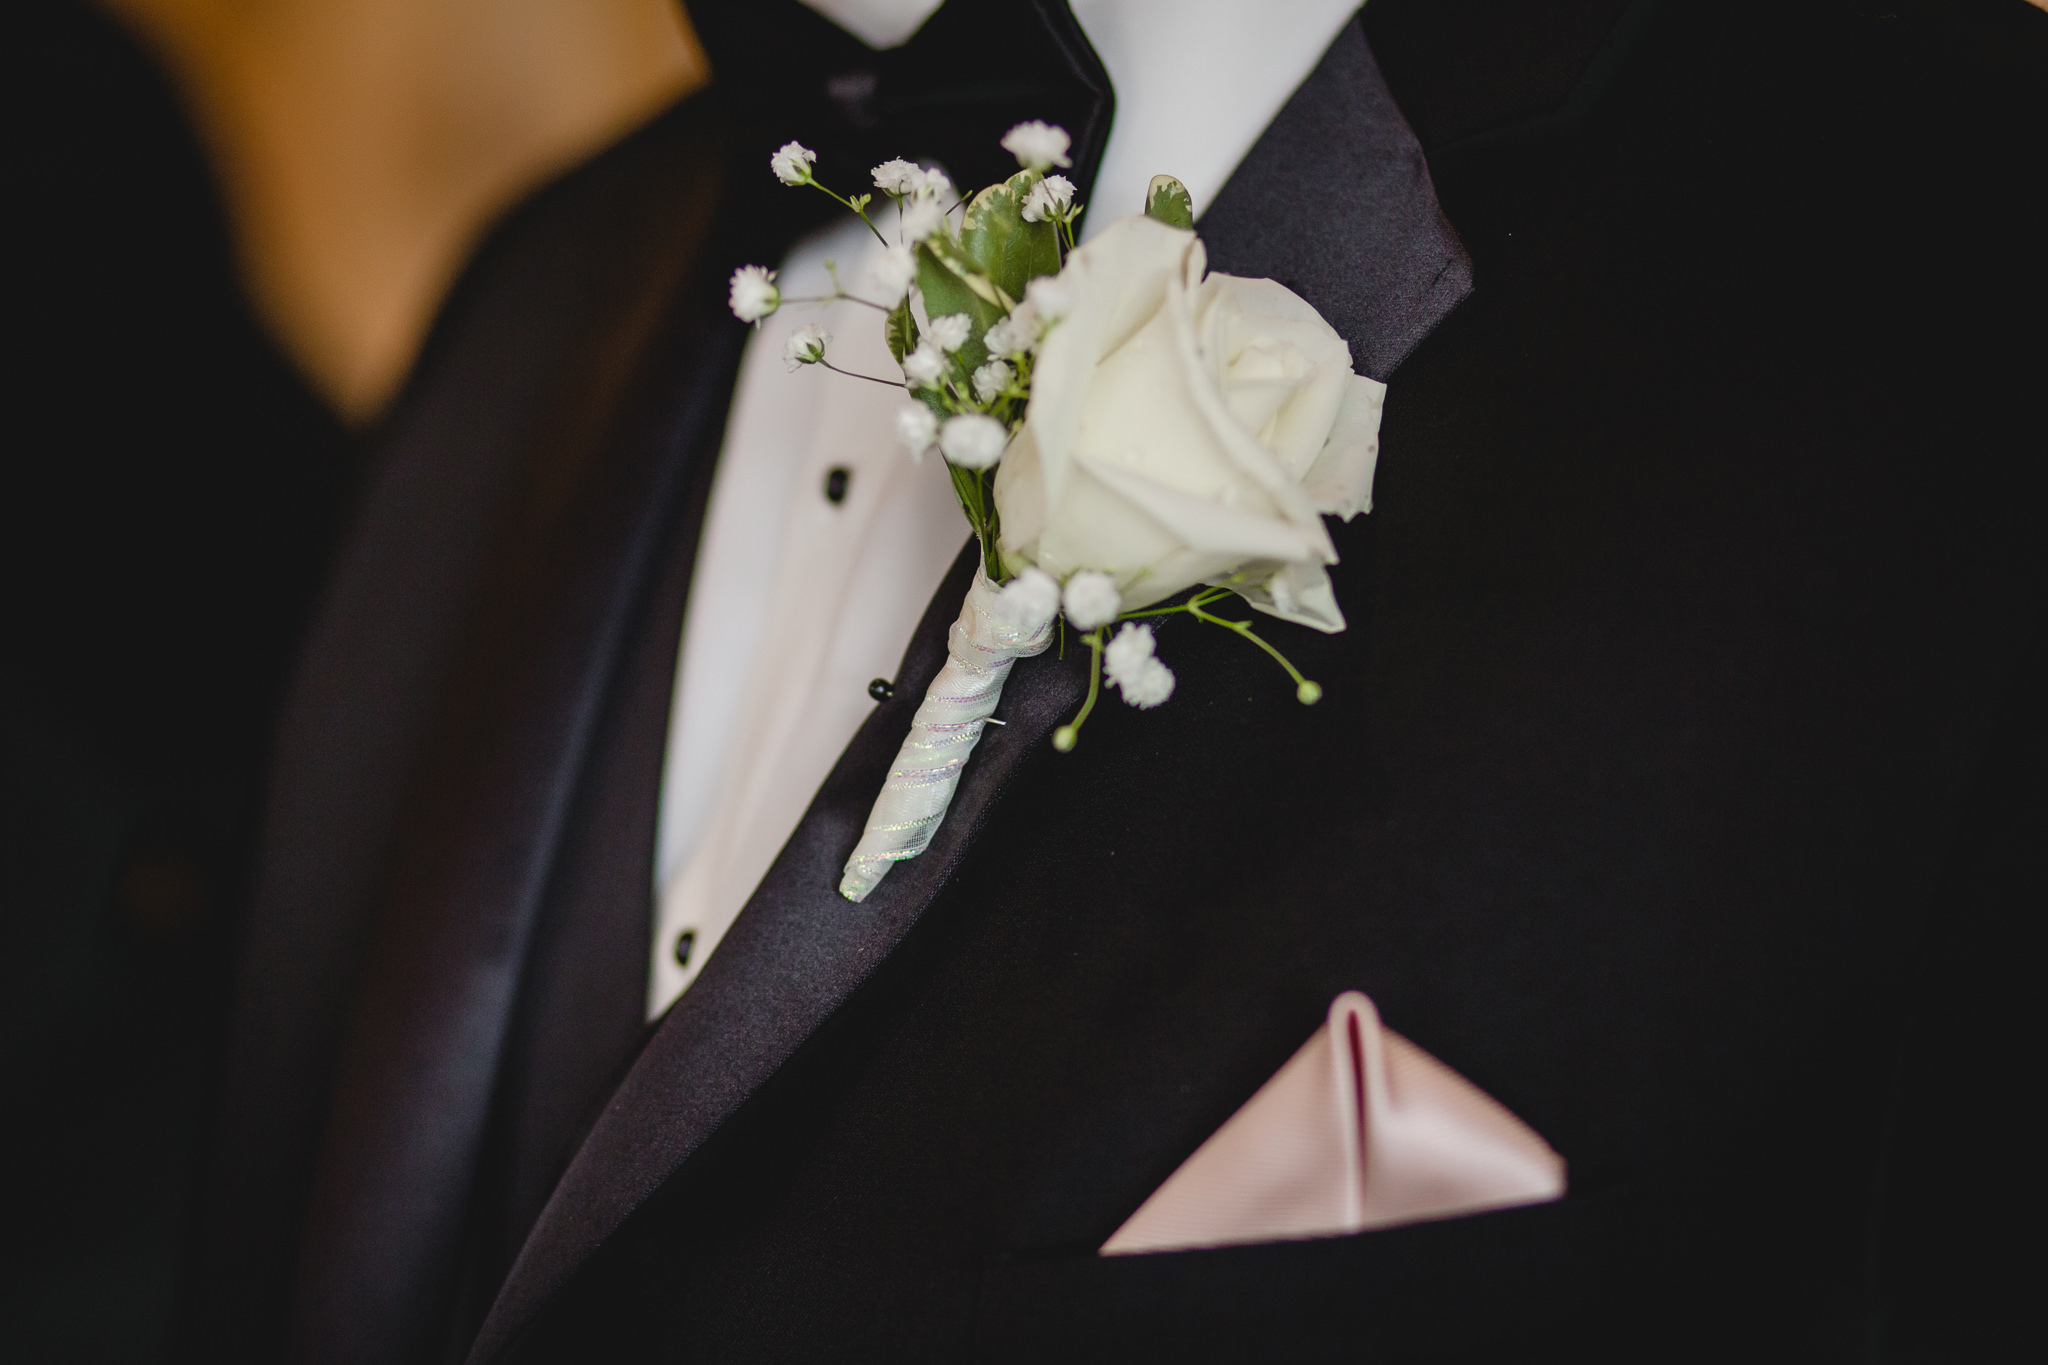 White rose boutonniere for the groom at the Gathering Place at Darlington Lake